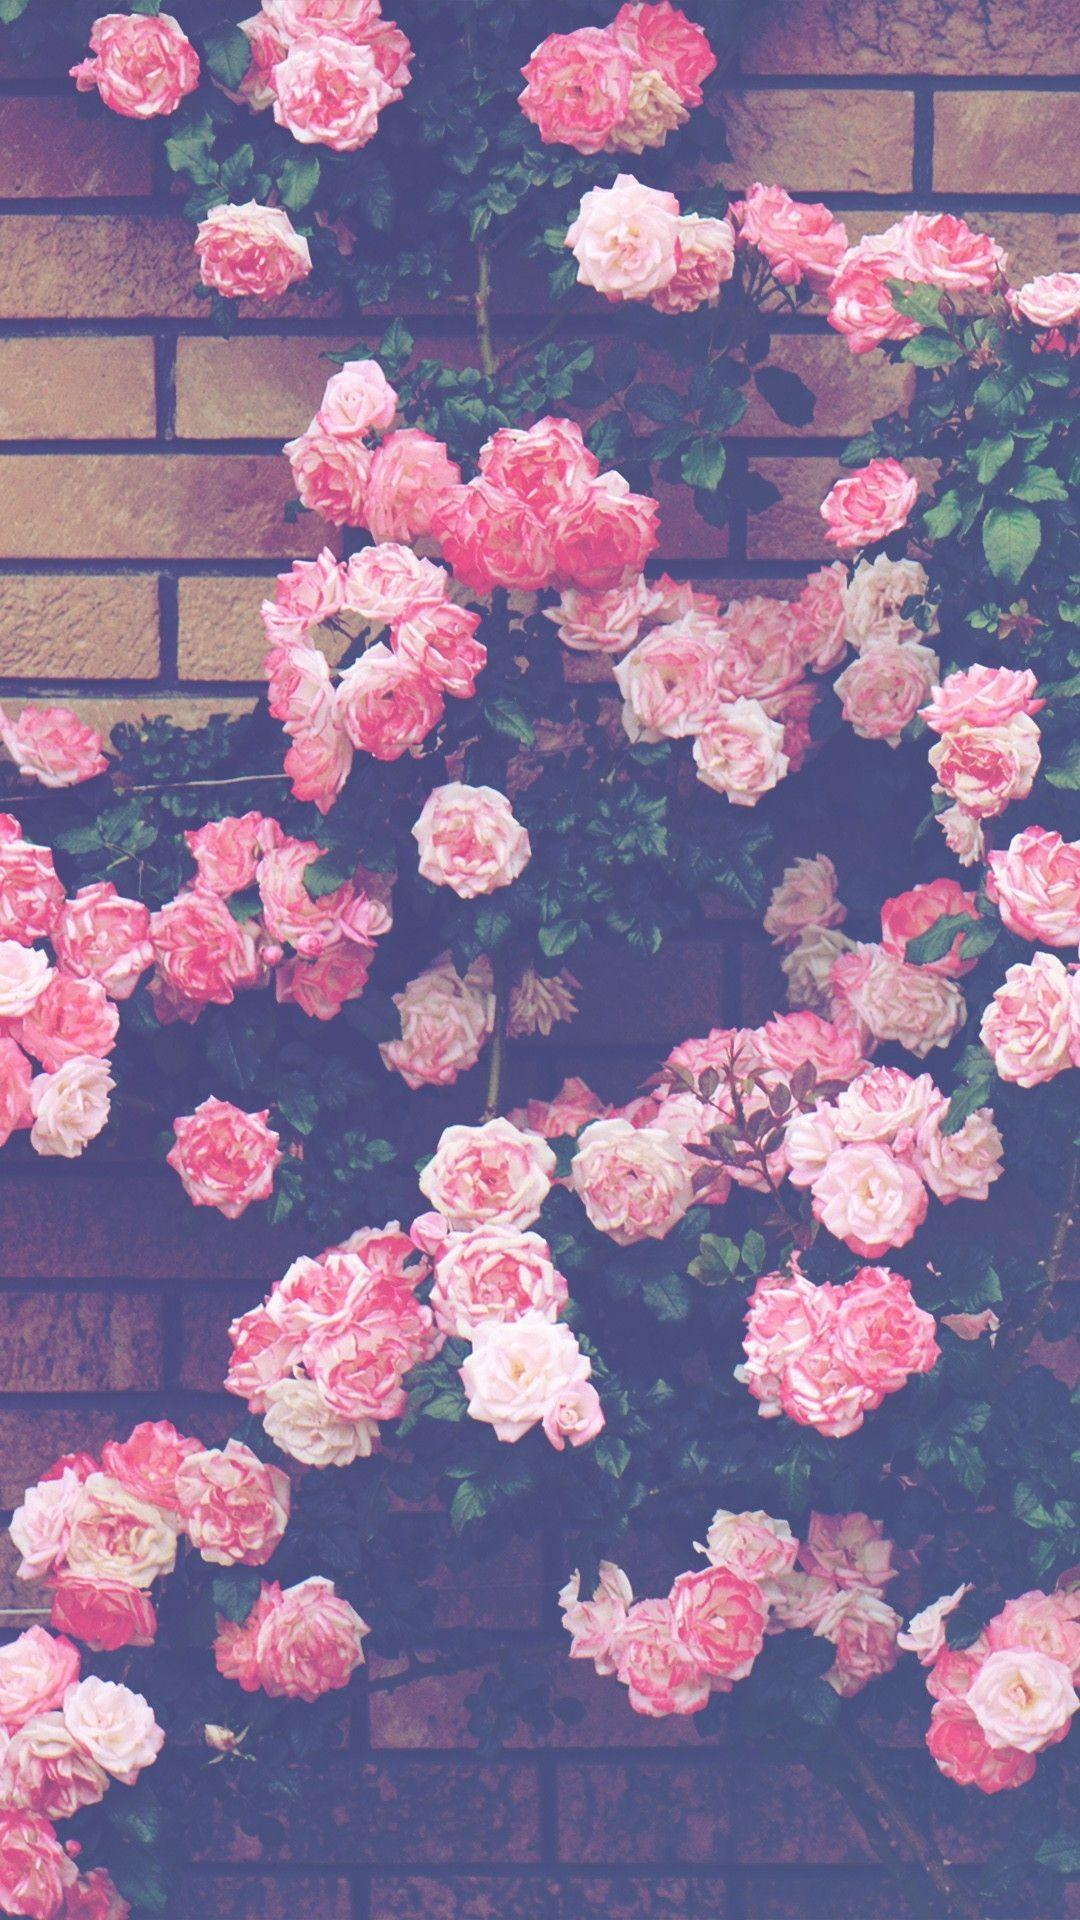 If you love clouds, the moon, stars, flowers, nature, or simple backgrounds, this is the place for you! Aesthetic Pink Roses Wallpapers - Wallpaper Cave